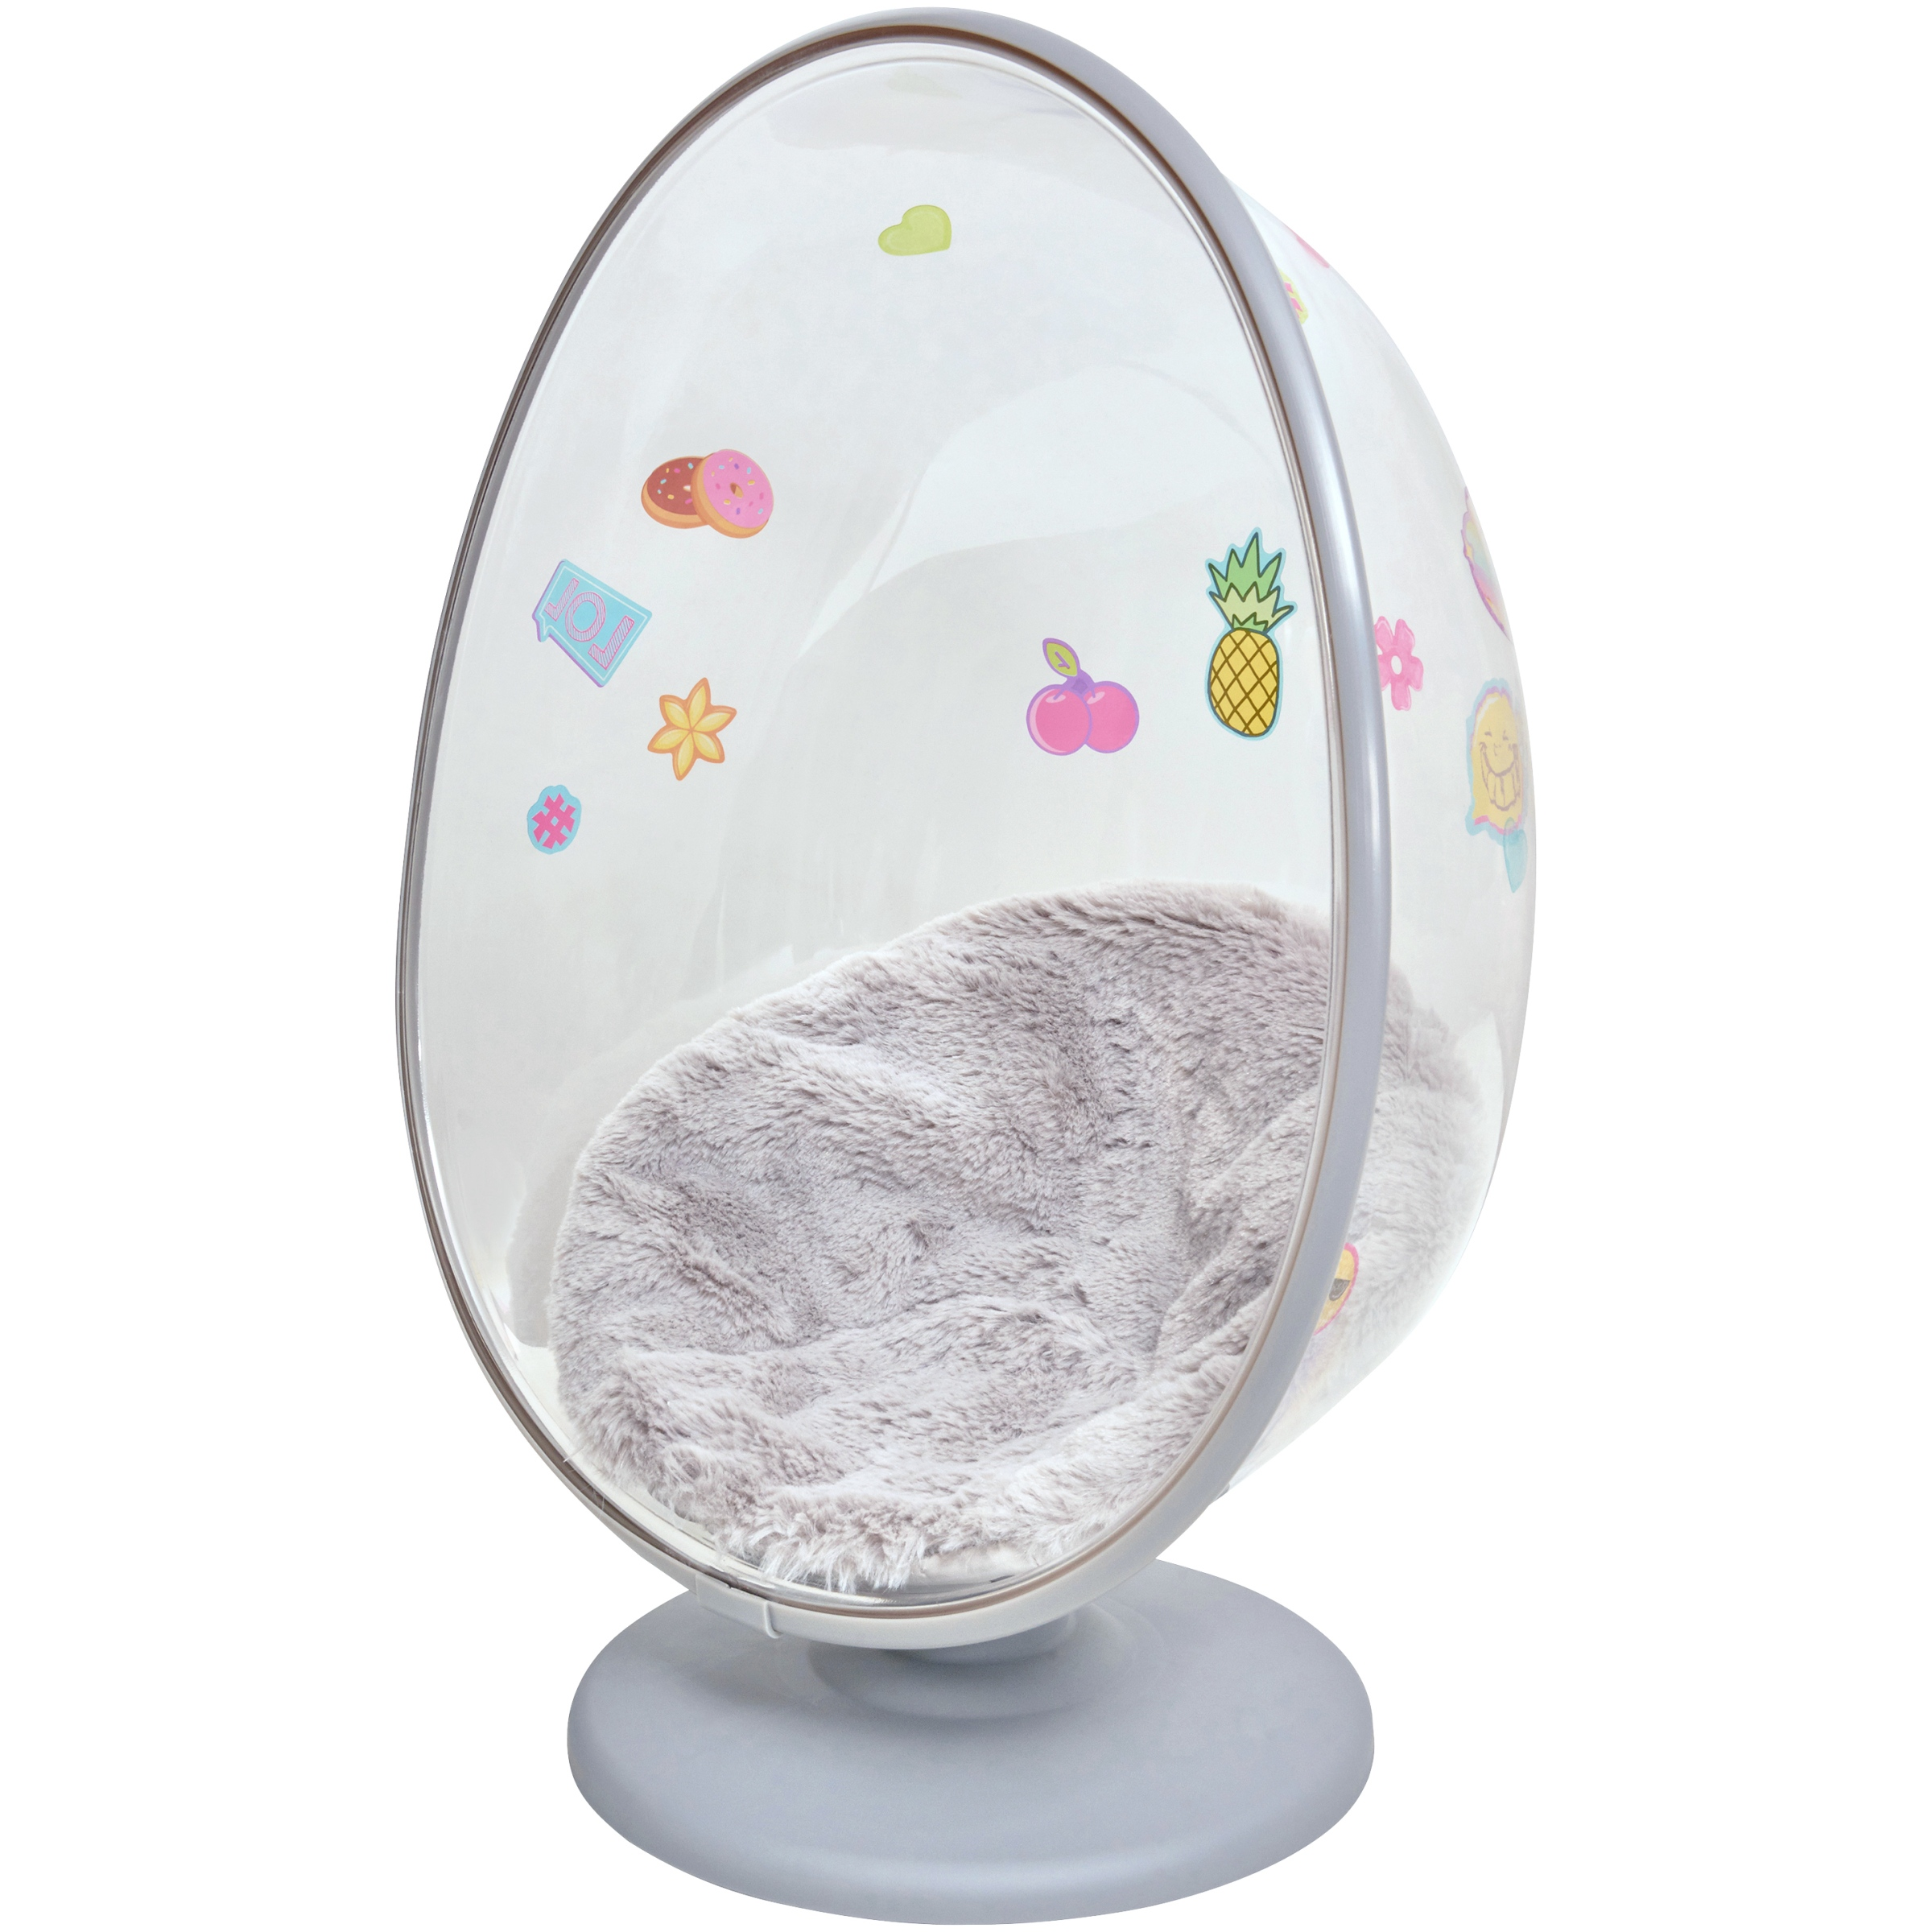 My Life As Egg Chair, Translucent Design with Silver Accents, Designed for 18-Inch Dolls